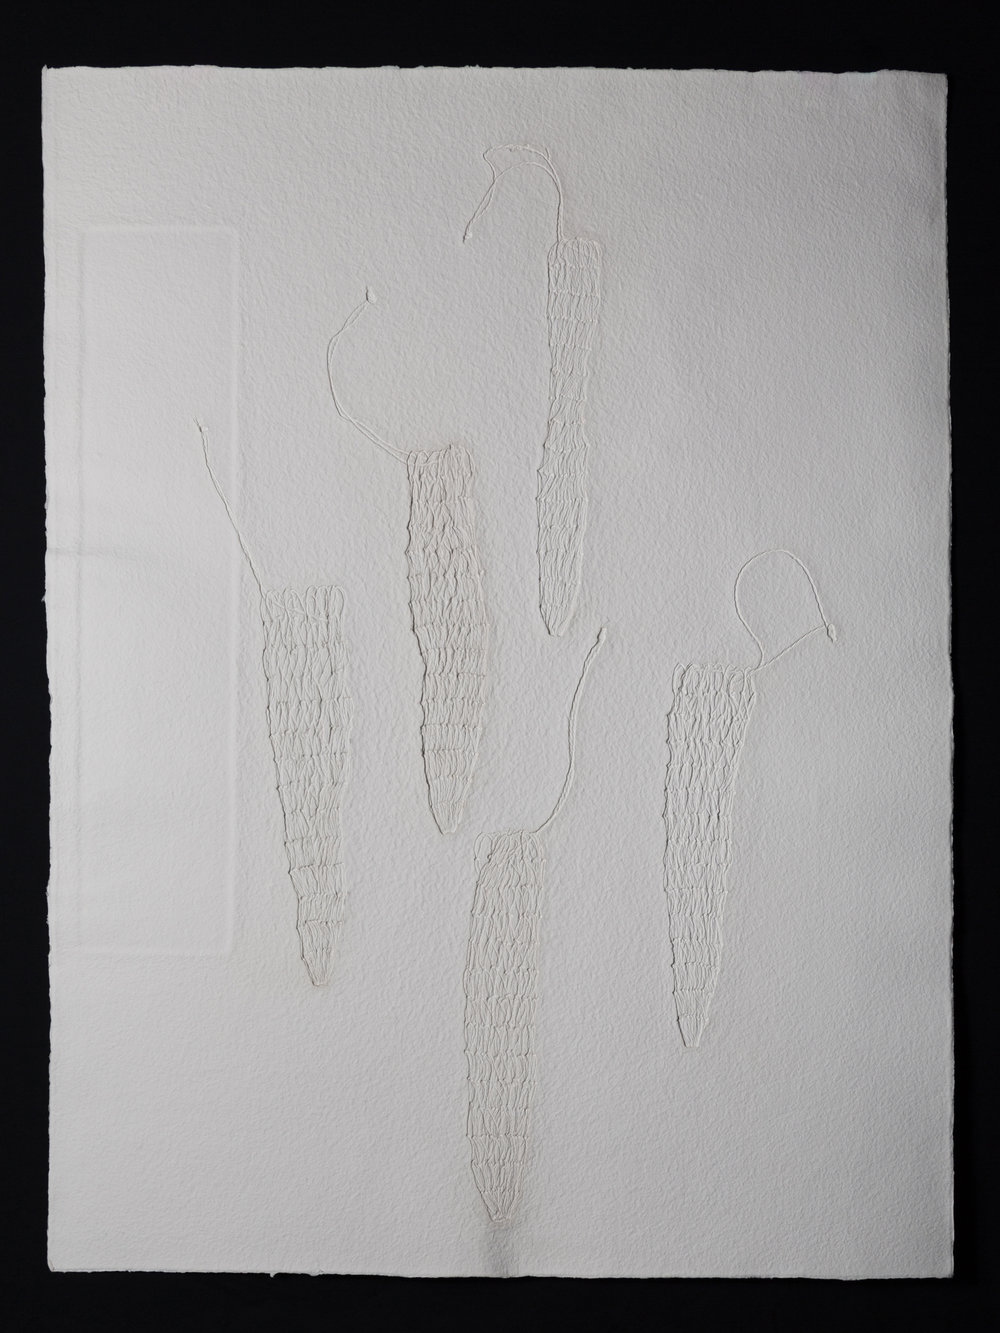 "Remainder , 2017, cast cotton paper, 30"" x 22"""